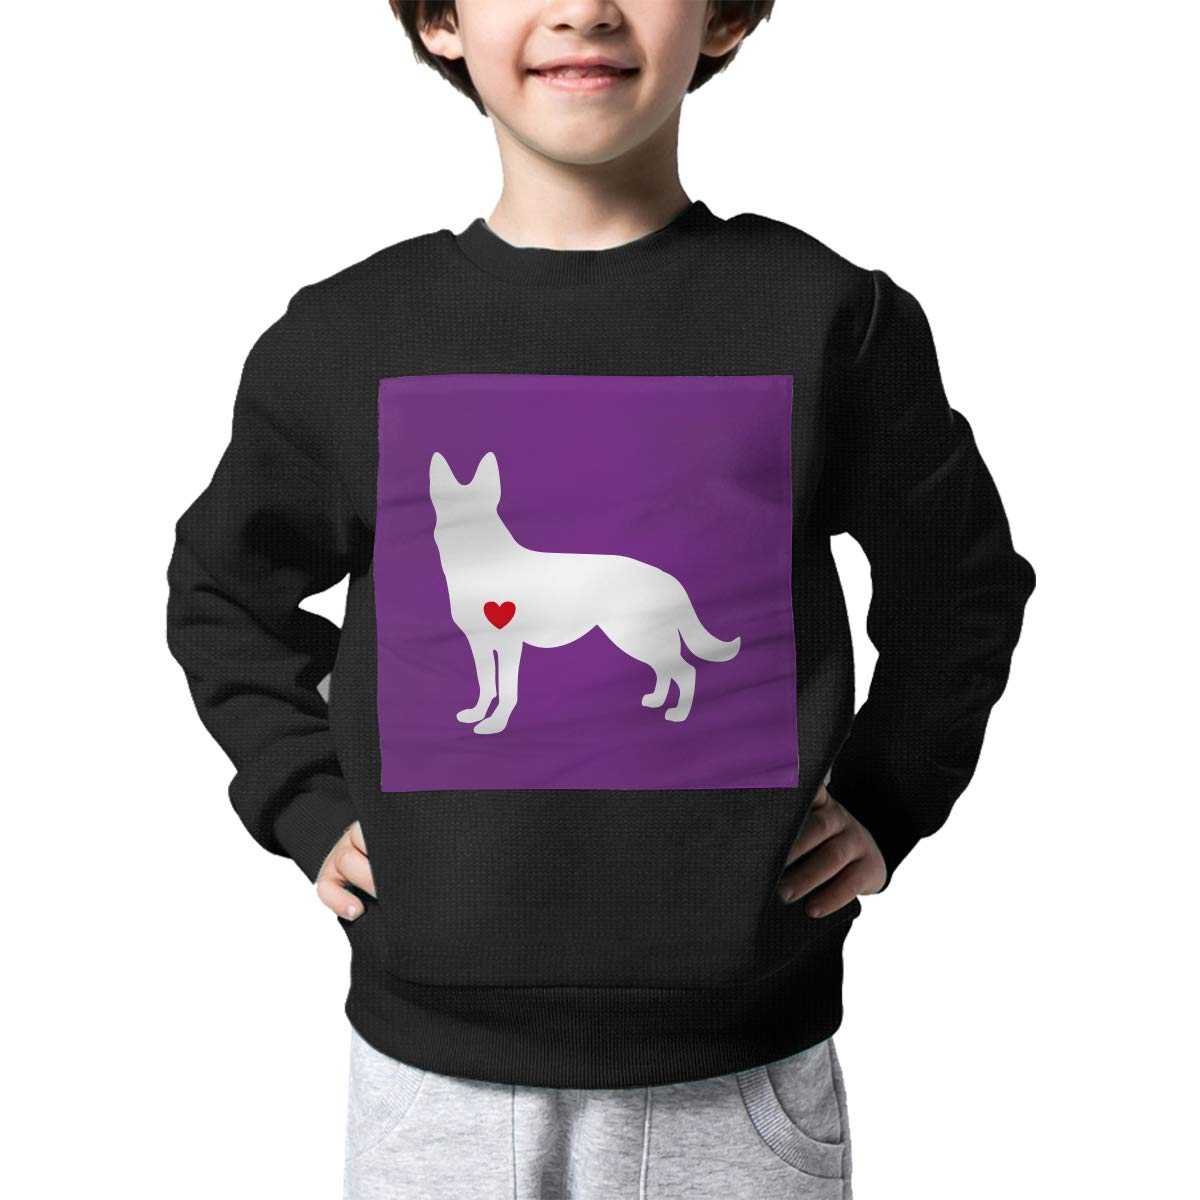 AW-KOCP Childrens German Shepherd with Heart Sweater Kids Outerwear